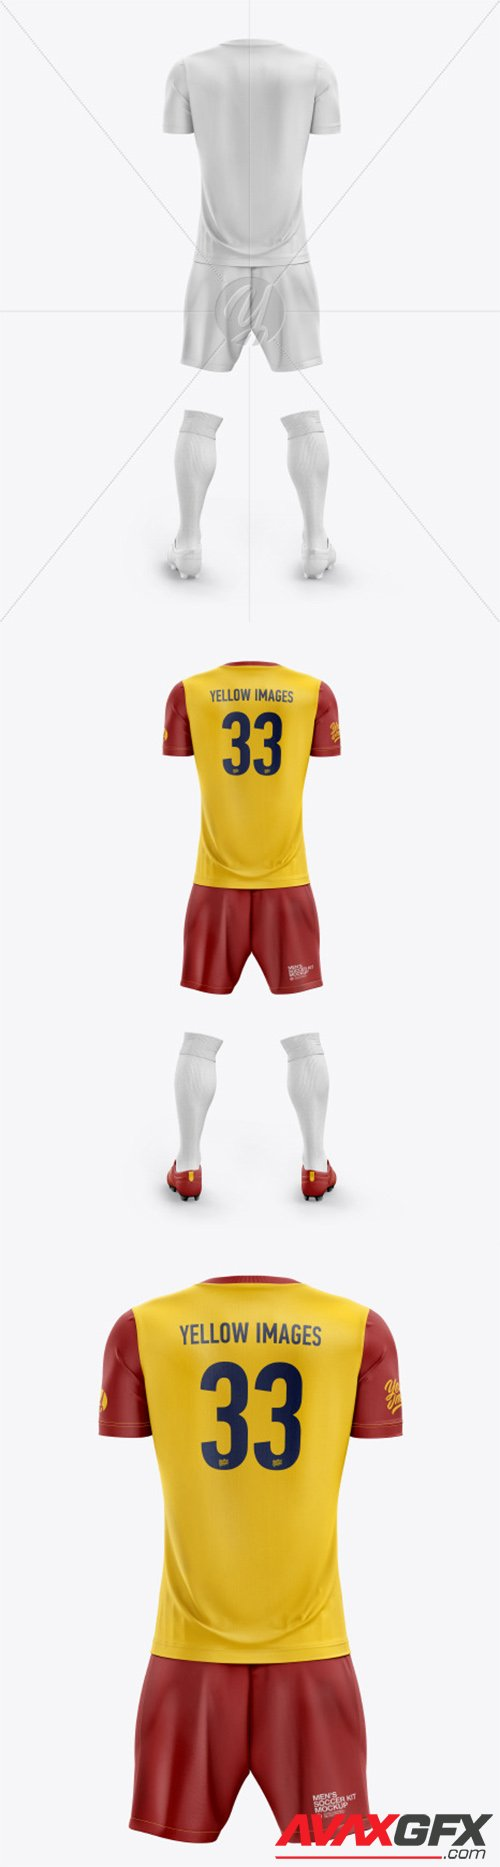 Men's Full Soccer Kit with Crew Neck Jersey mockup (Back View) 55760